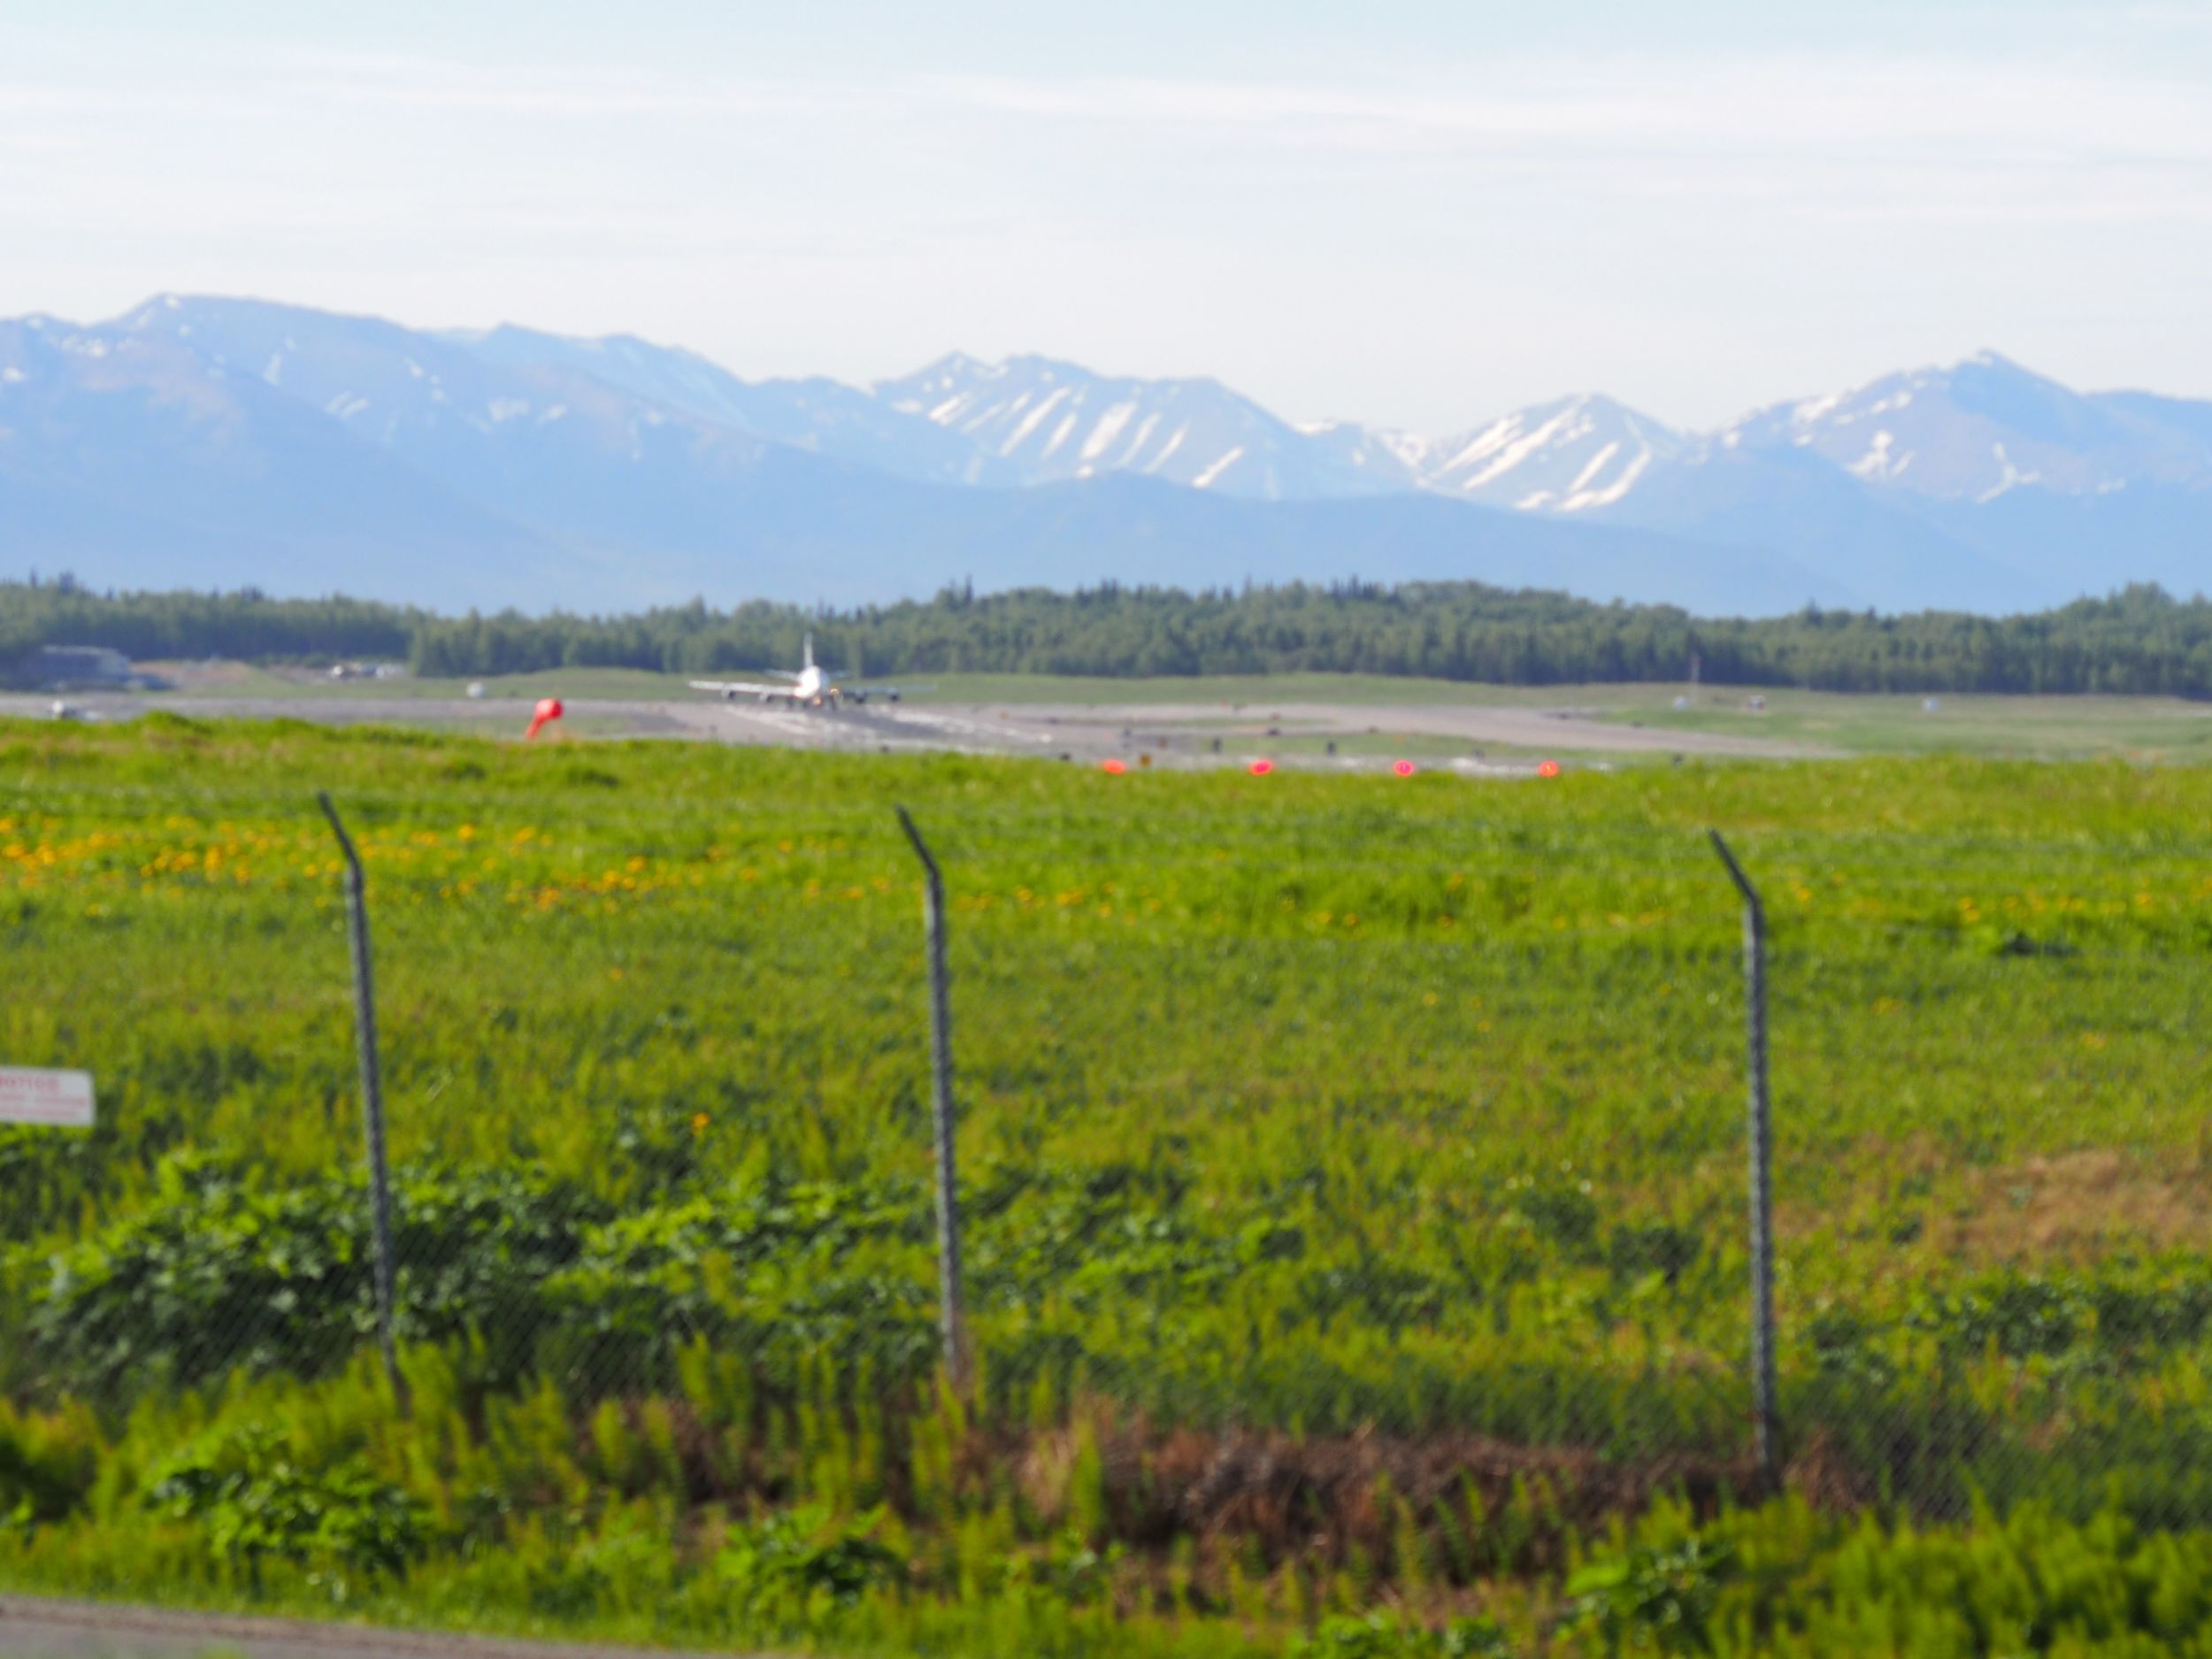 The trail goes right by Anchorage airport, and you can see the planes take off right above your head!